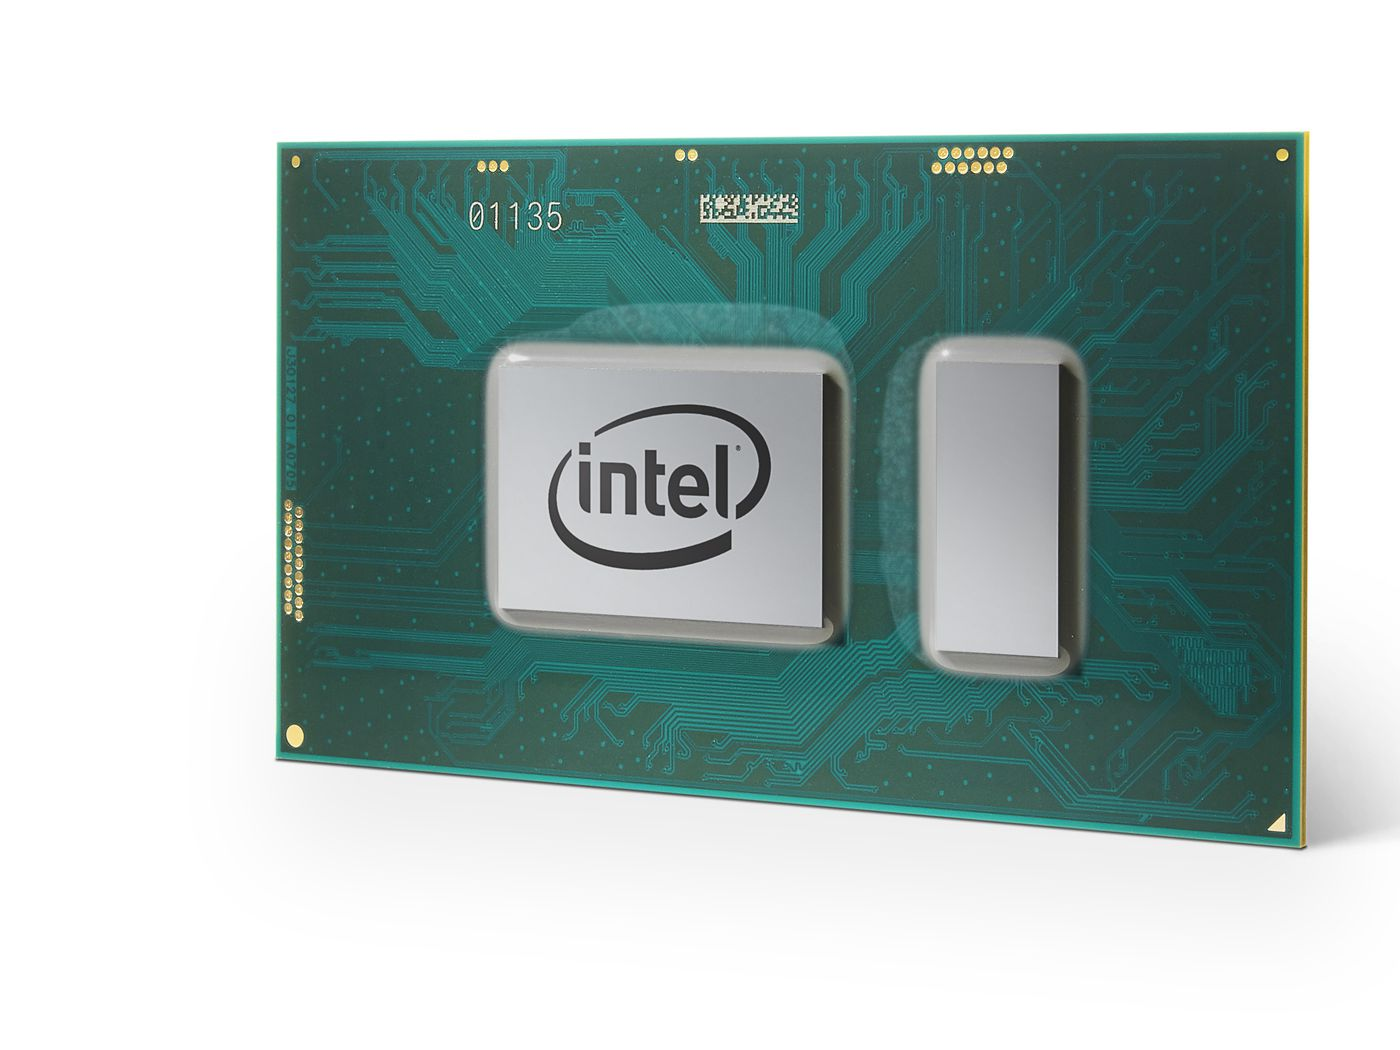 Intel's new 8th generation Core processors launch today with revised